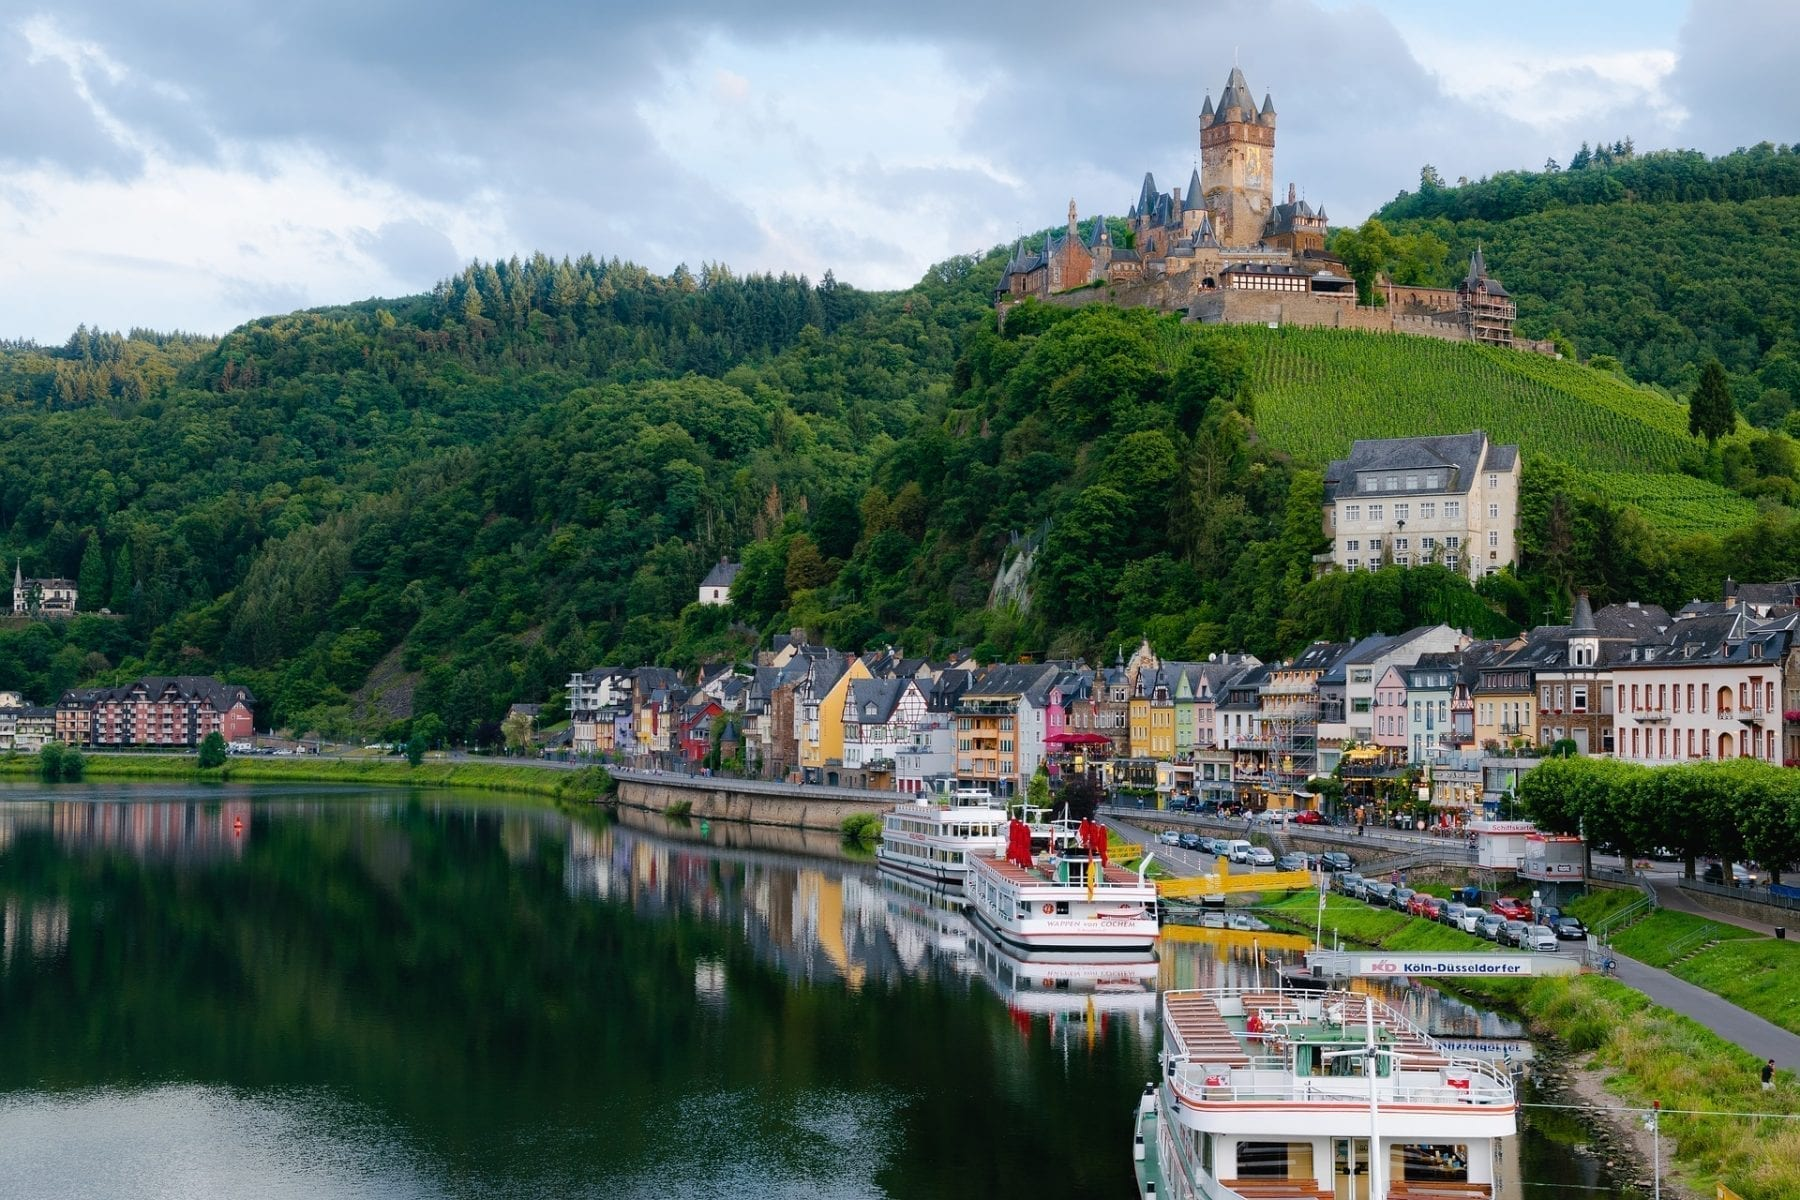 River Cruises in Germany- A Stress-Free Way to Experience Germany